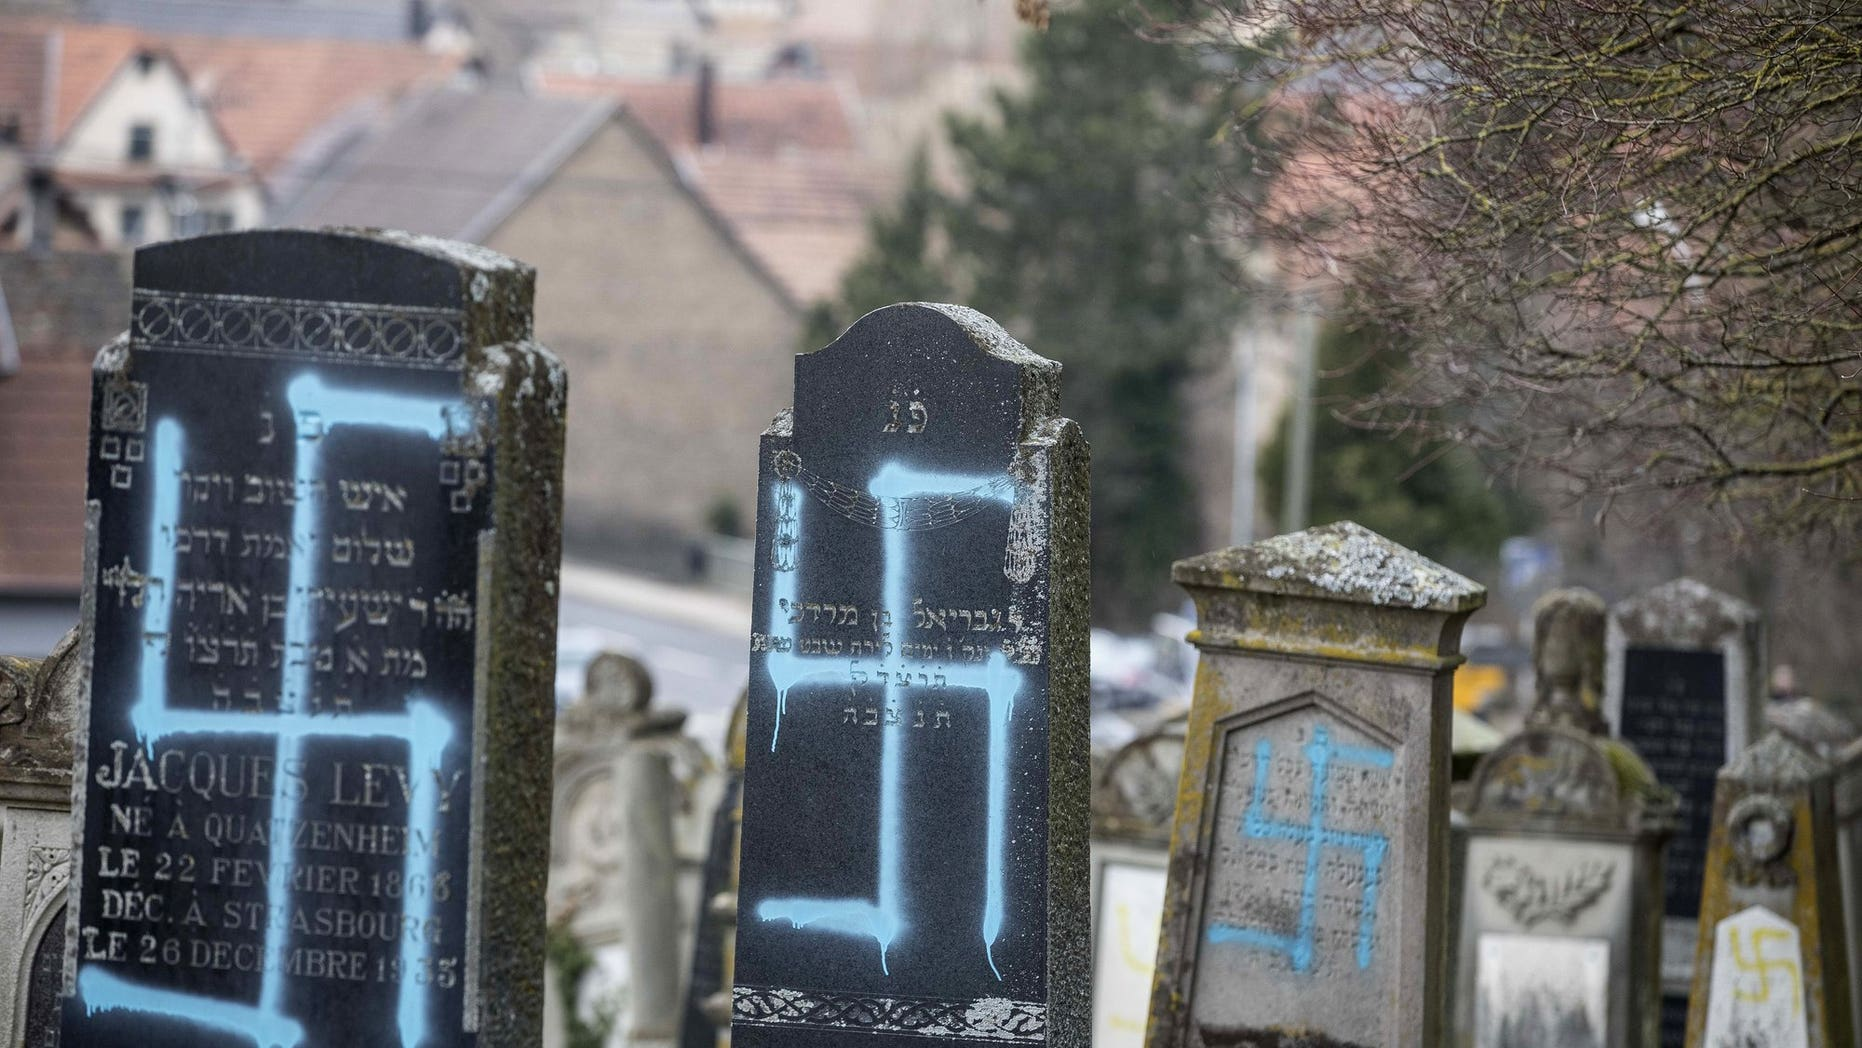 Destroyed graves with marked swastikas will be displayed on Tuesday, February 19, 2019 at the Jewish cemetery in Quatzenheim, eastern France. Throughout France, marches and meetings against anti-Semitism take place after a series of anti-Semitic actions shook the country.